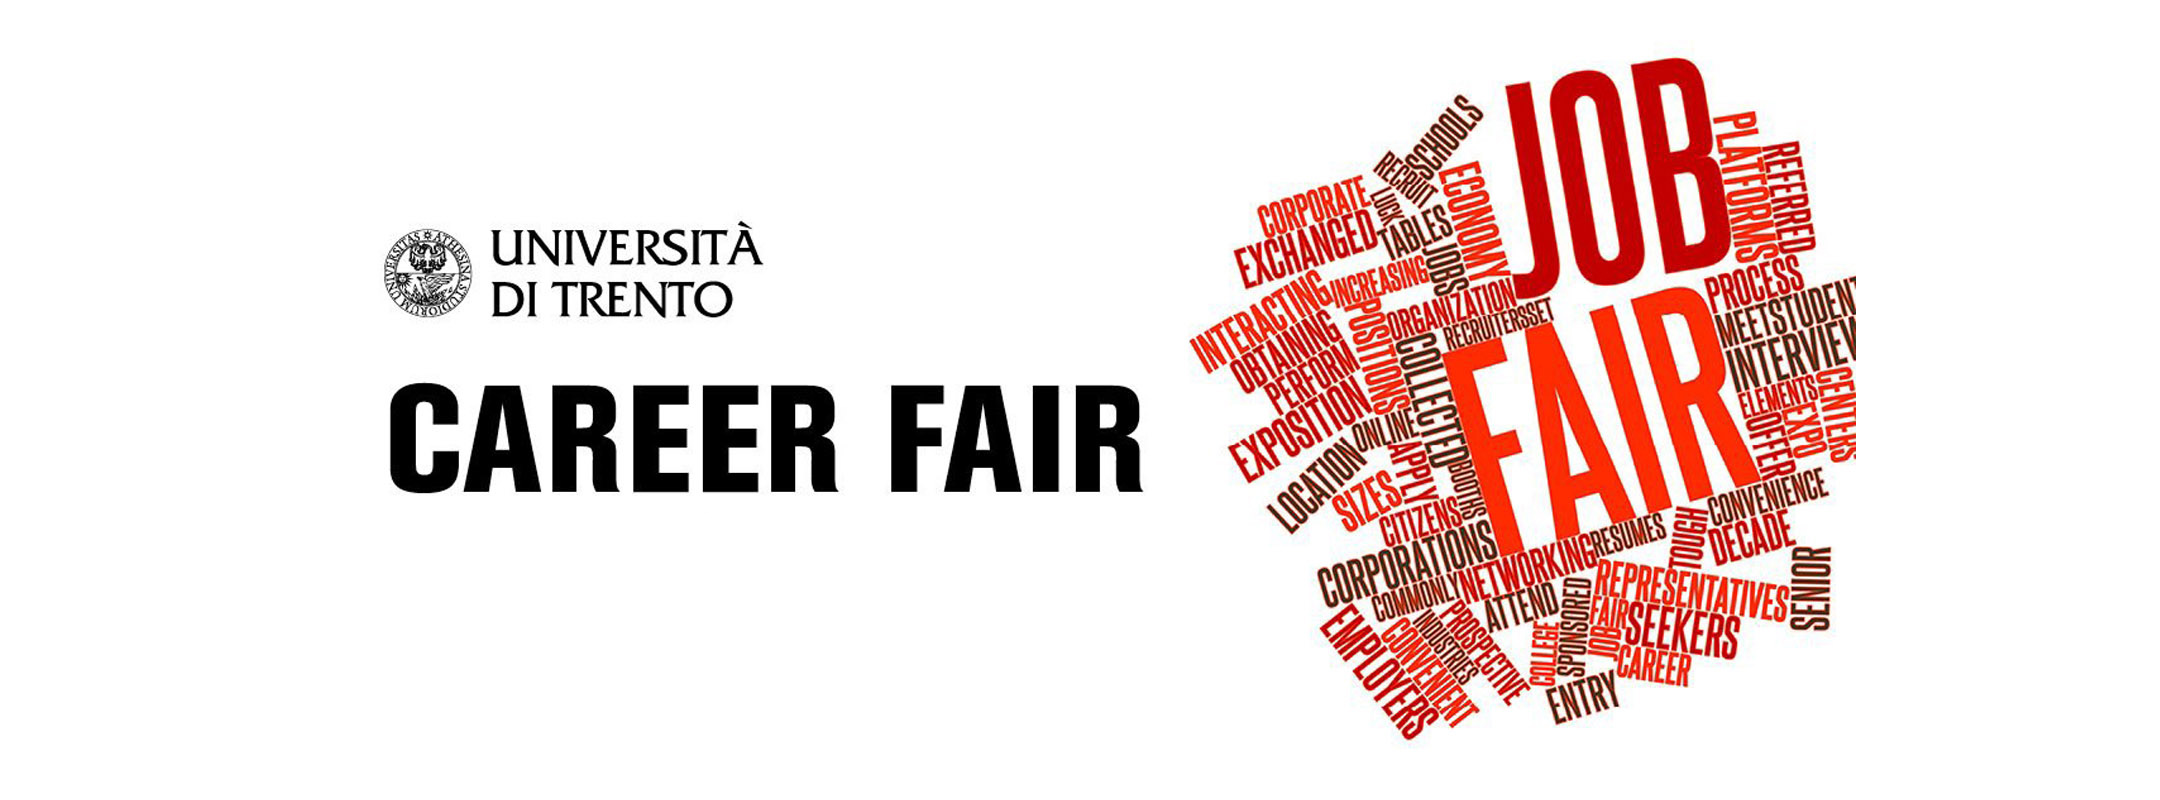 PREGIS INCONTRA L'UNIVERSITÀ DI TRENTO A CAREER FAIR